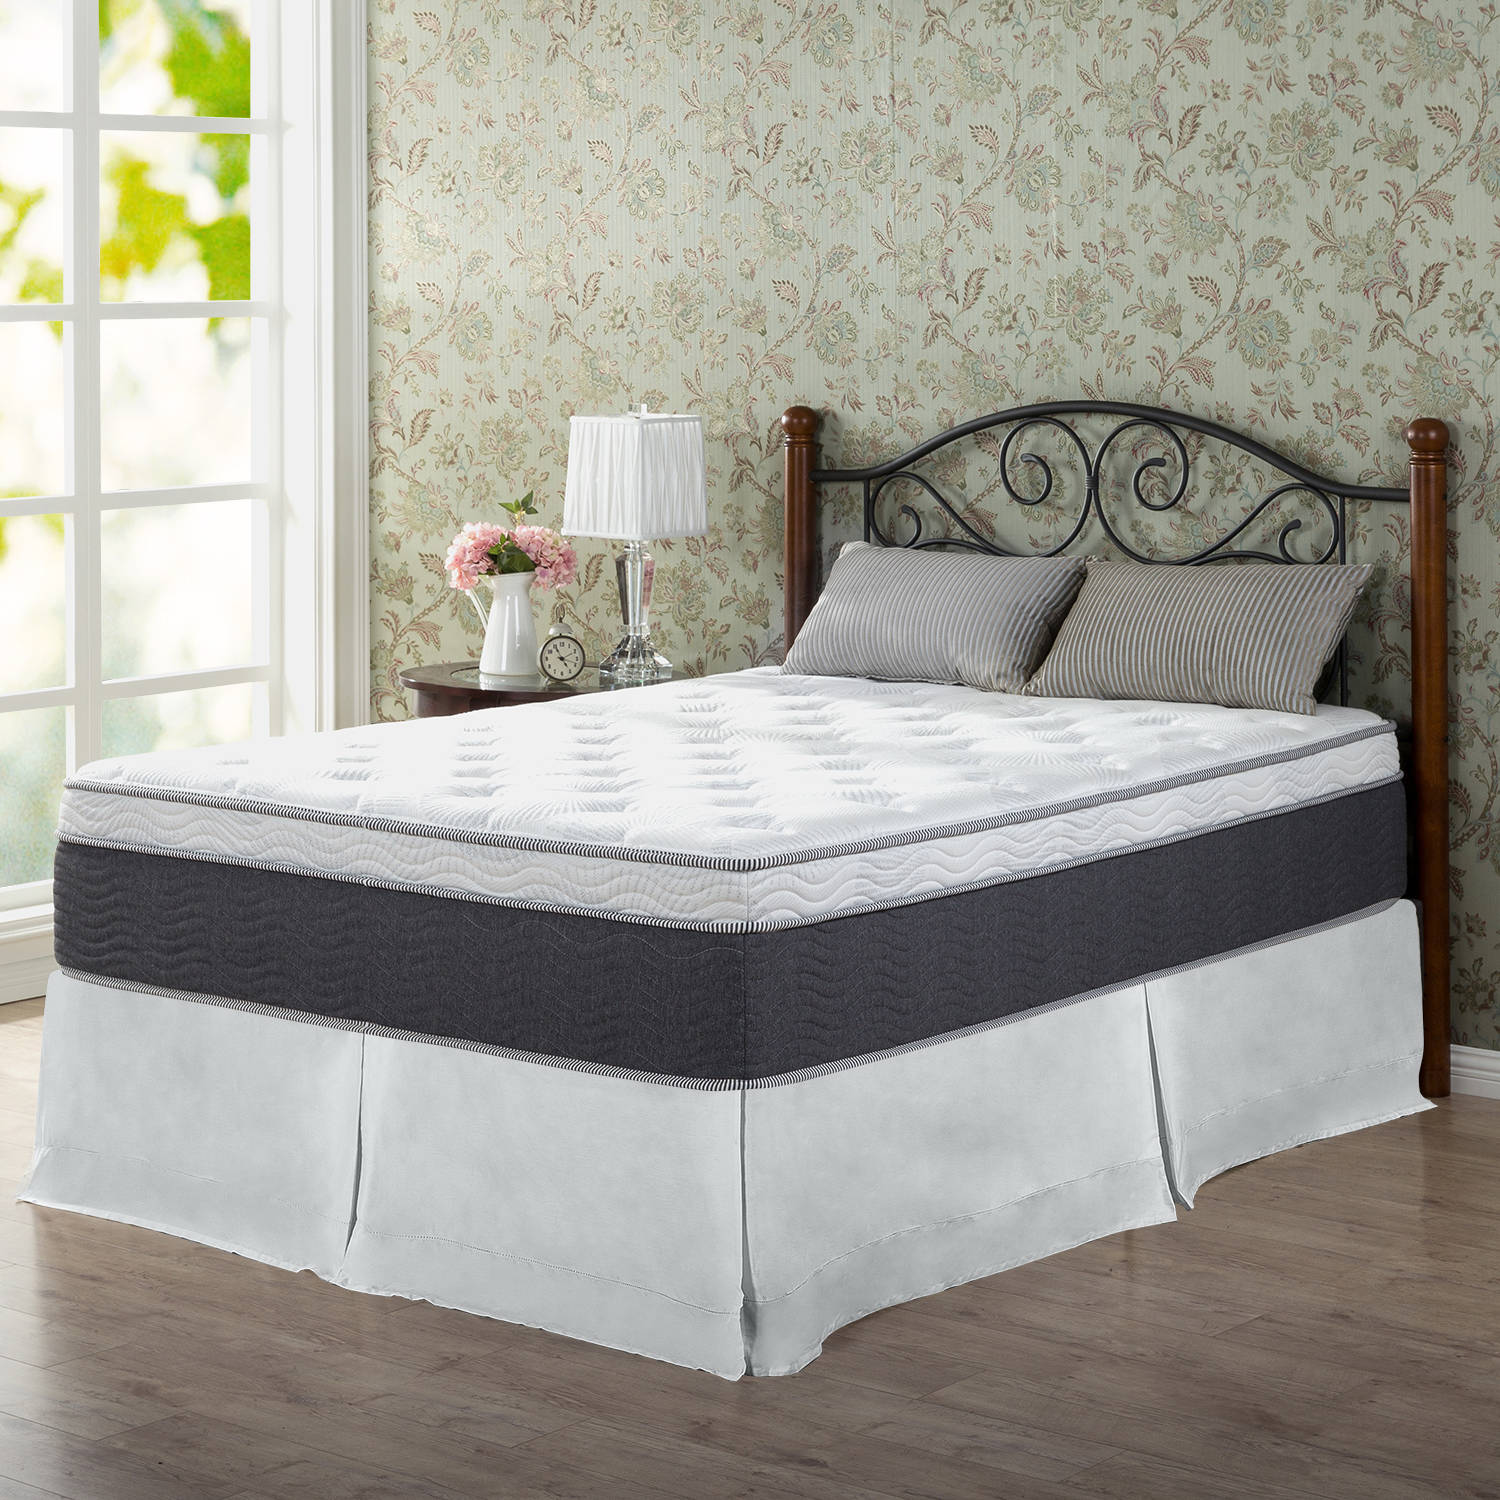 Slumber 1 by Zinus 13.5 Inch Adaptive Euro Top Spring Mattress